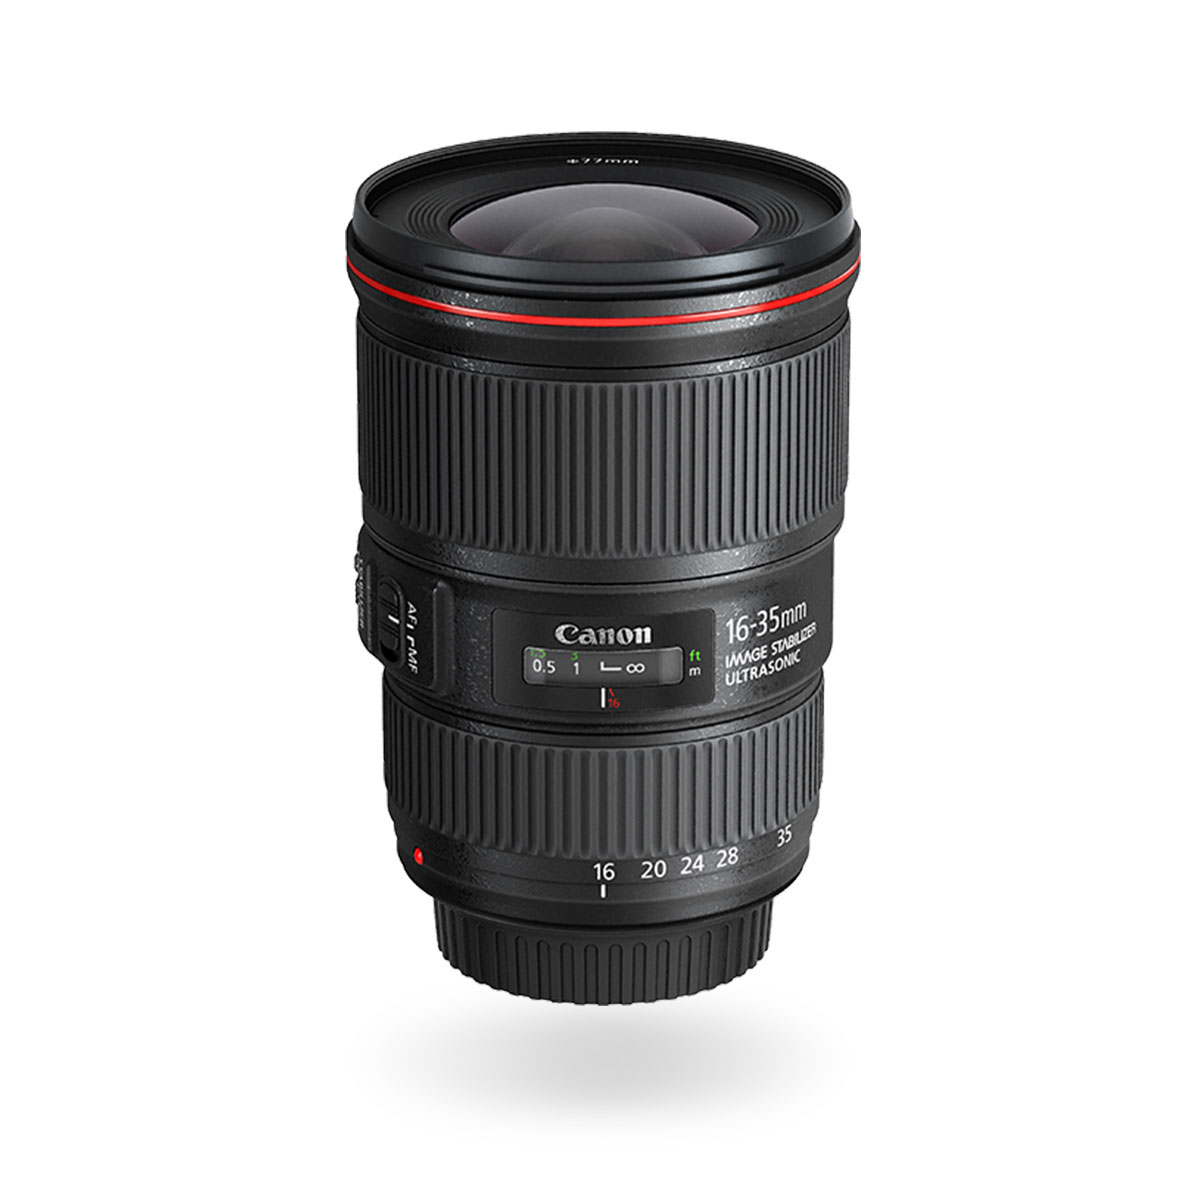 EF 16-35mm f/4L IS USM lens